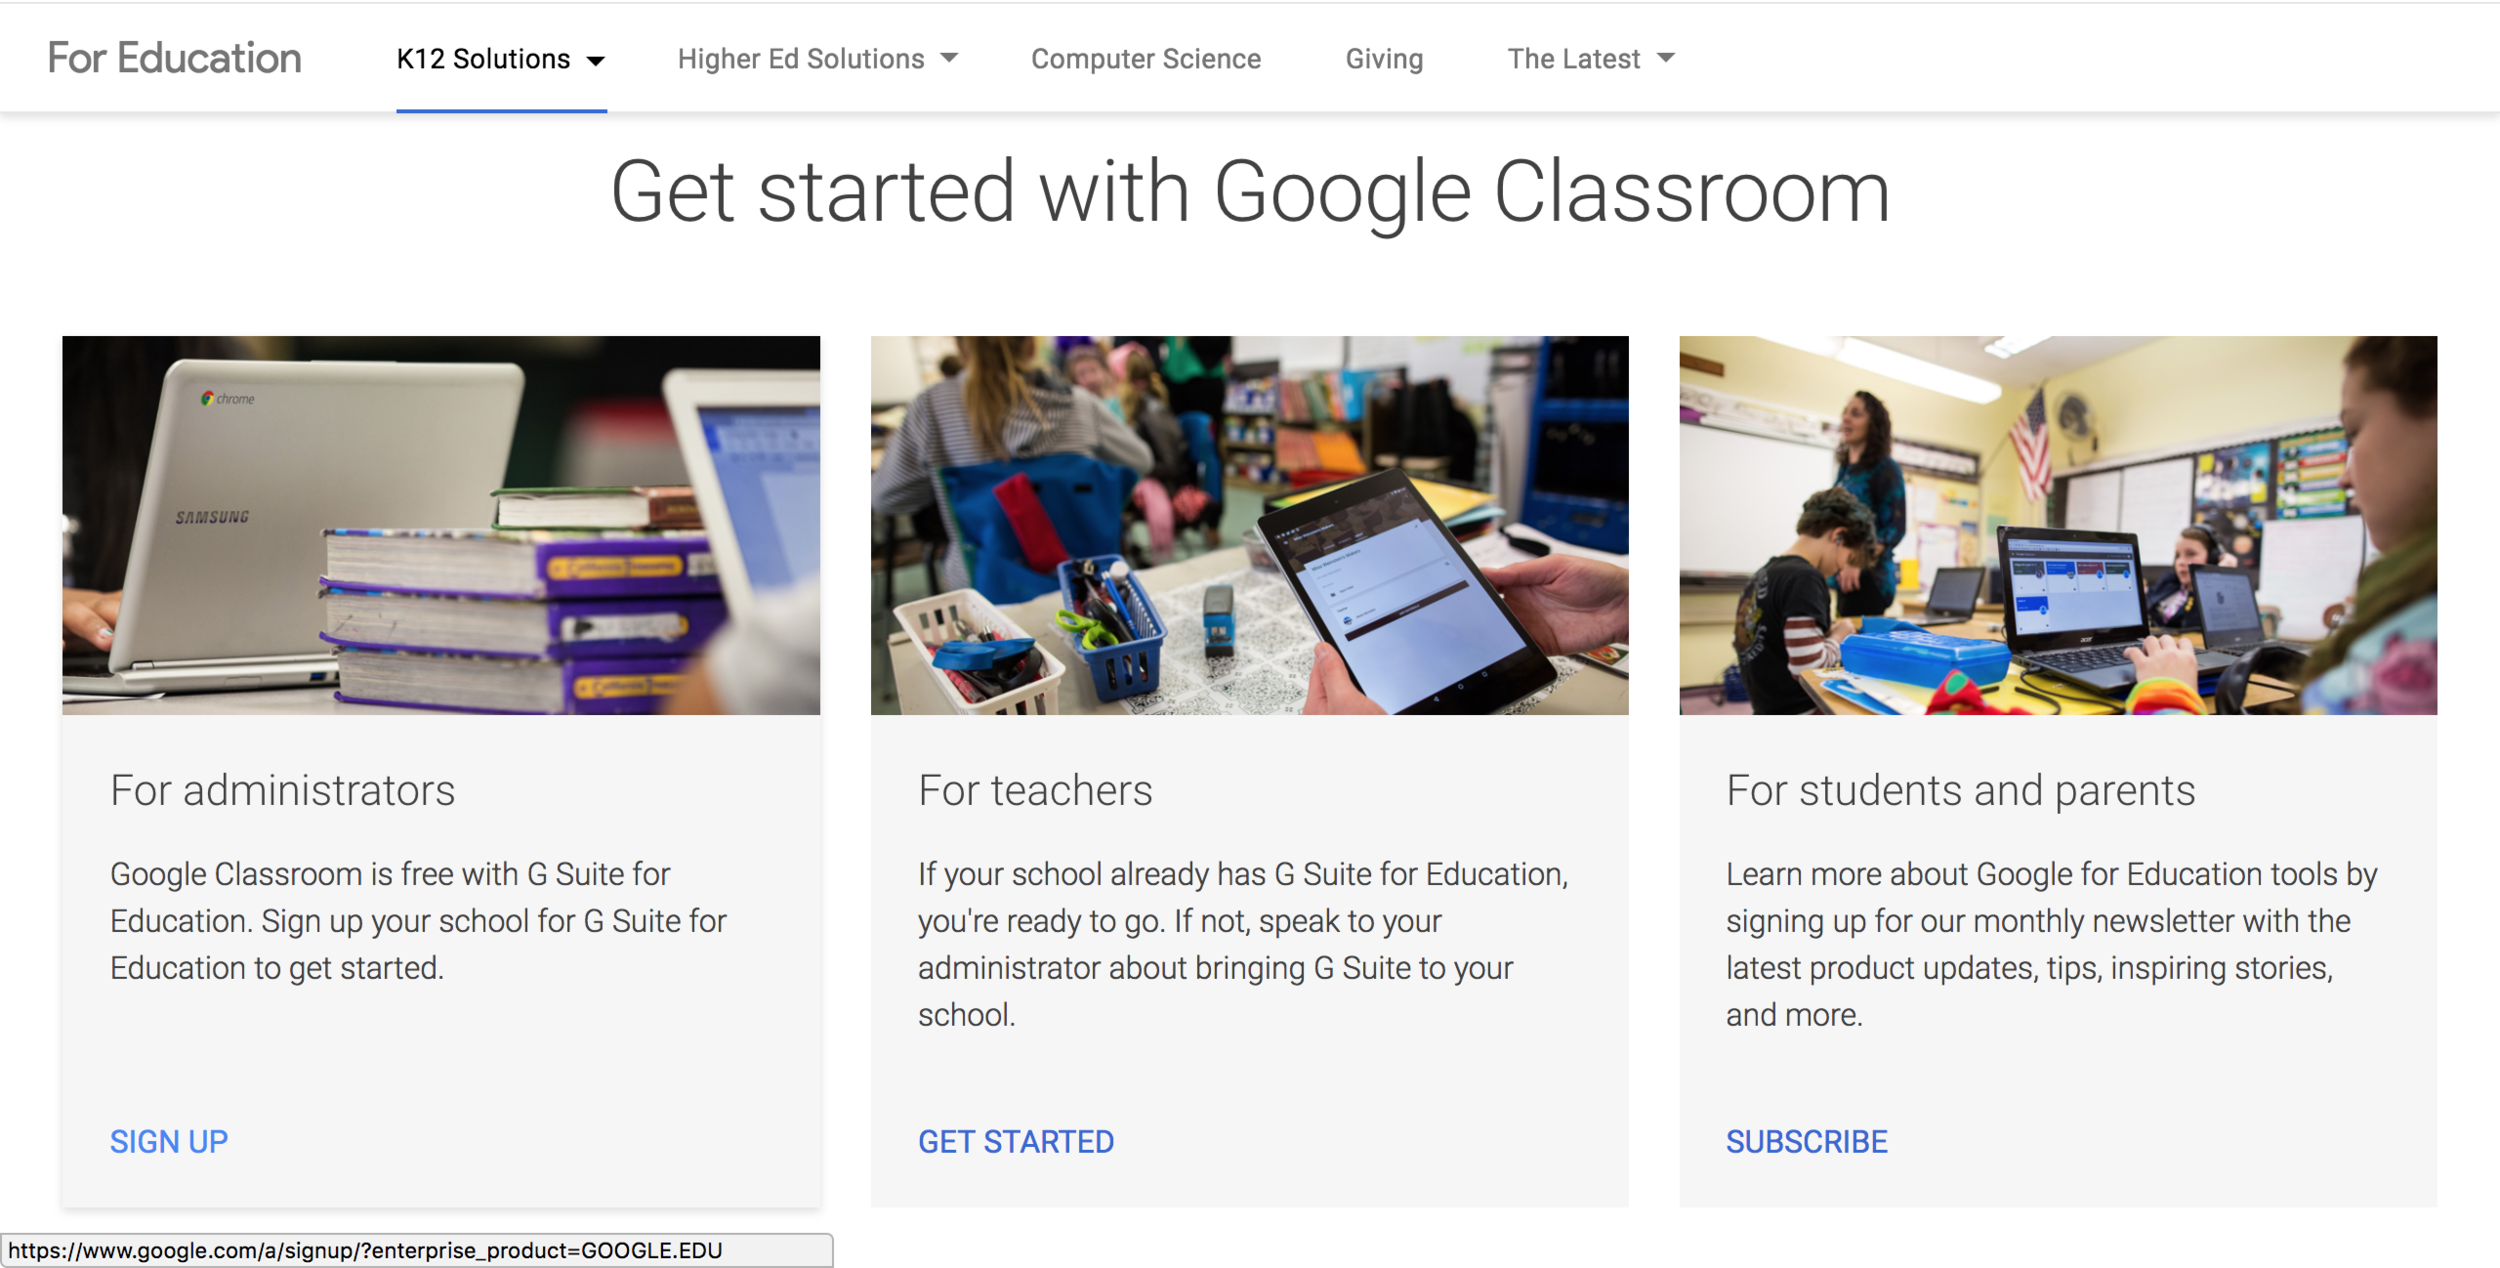 Google Classroom - Now that I have experienced the phenomenally streamlined power of Google Classroom, I cannot imagine a classroom experience without it. The collaborative nature of the G Suite is empowering for students, the ability to track revisions and recover earlier versions of documents is the ultimate safety net, and the interface is brilliant and effortlessly easy to navigate. I am in love with Google Classroom. It is the be all and end all of organizing a classroom.